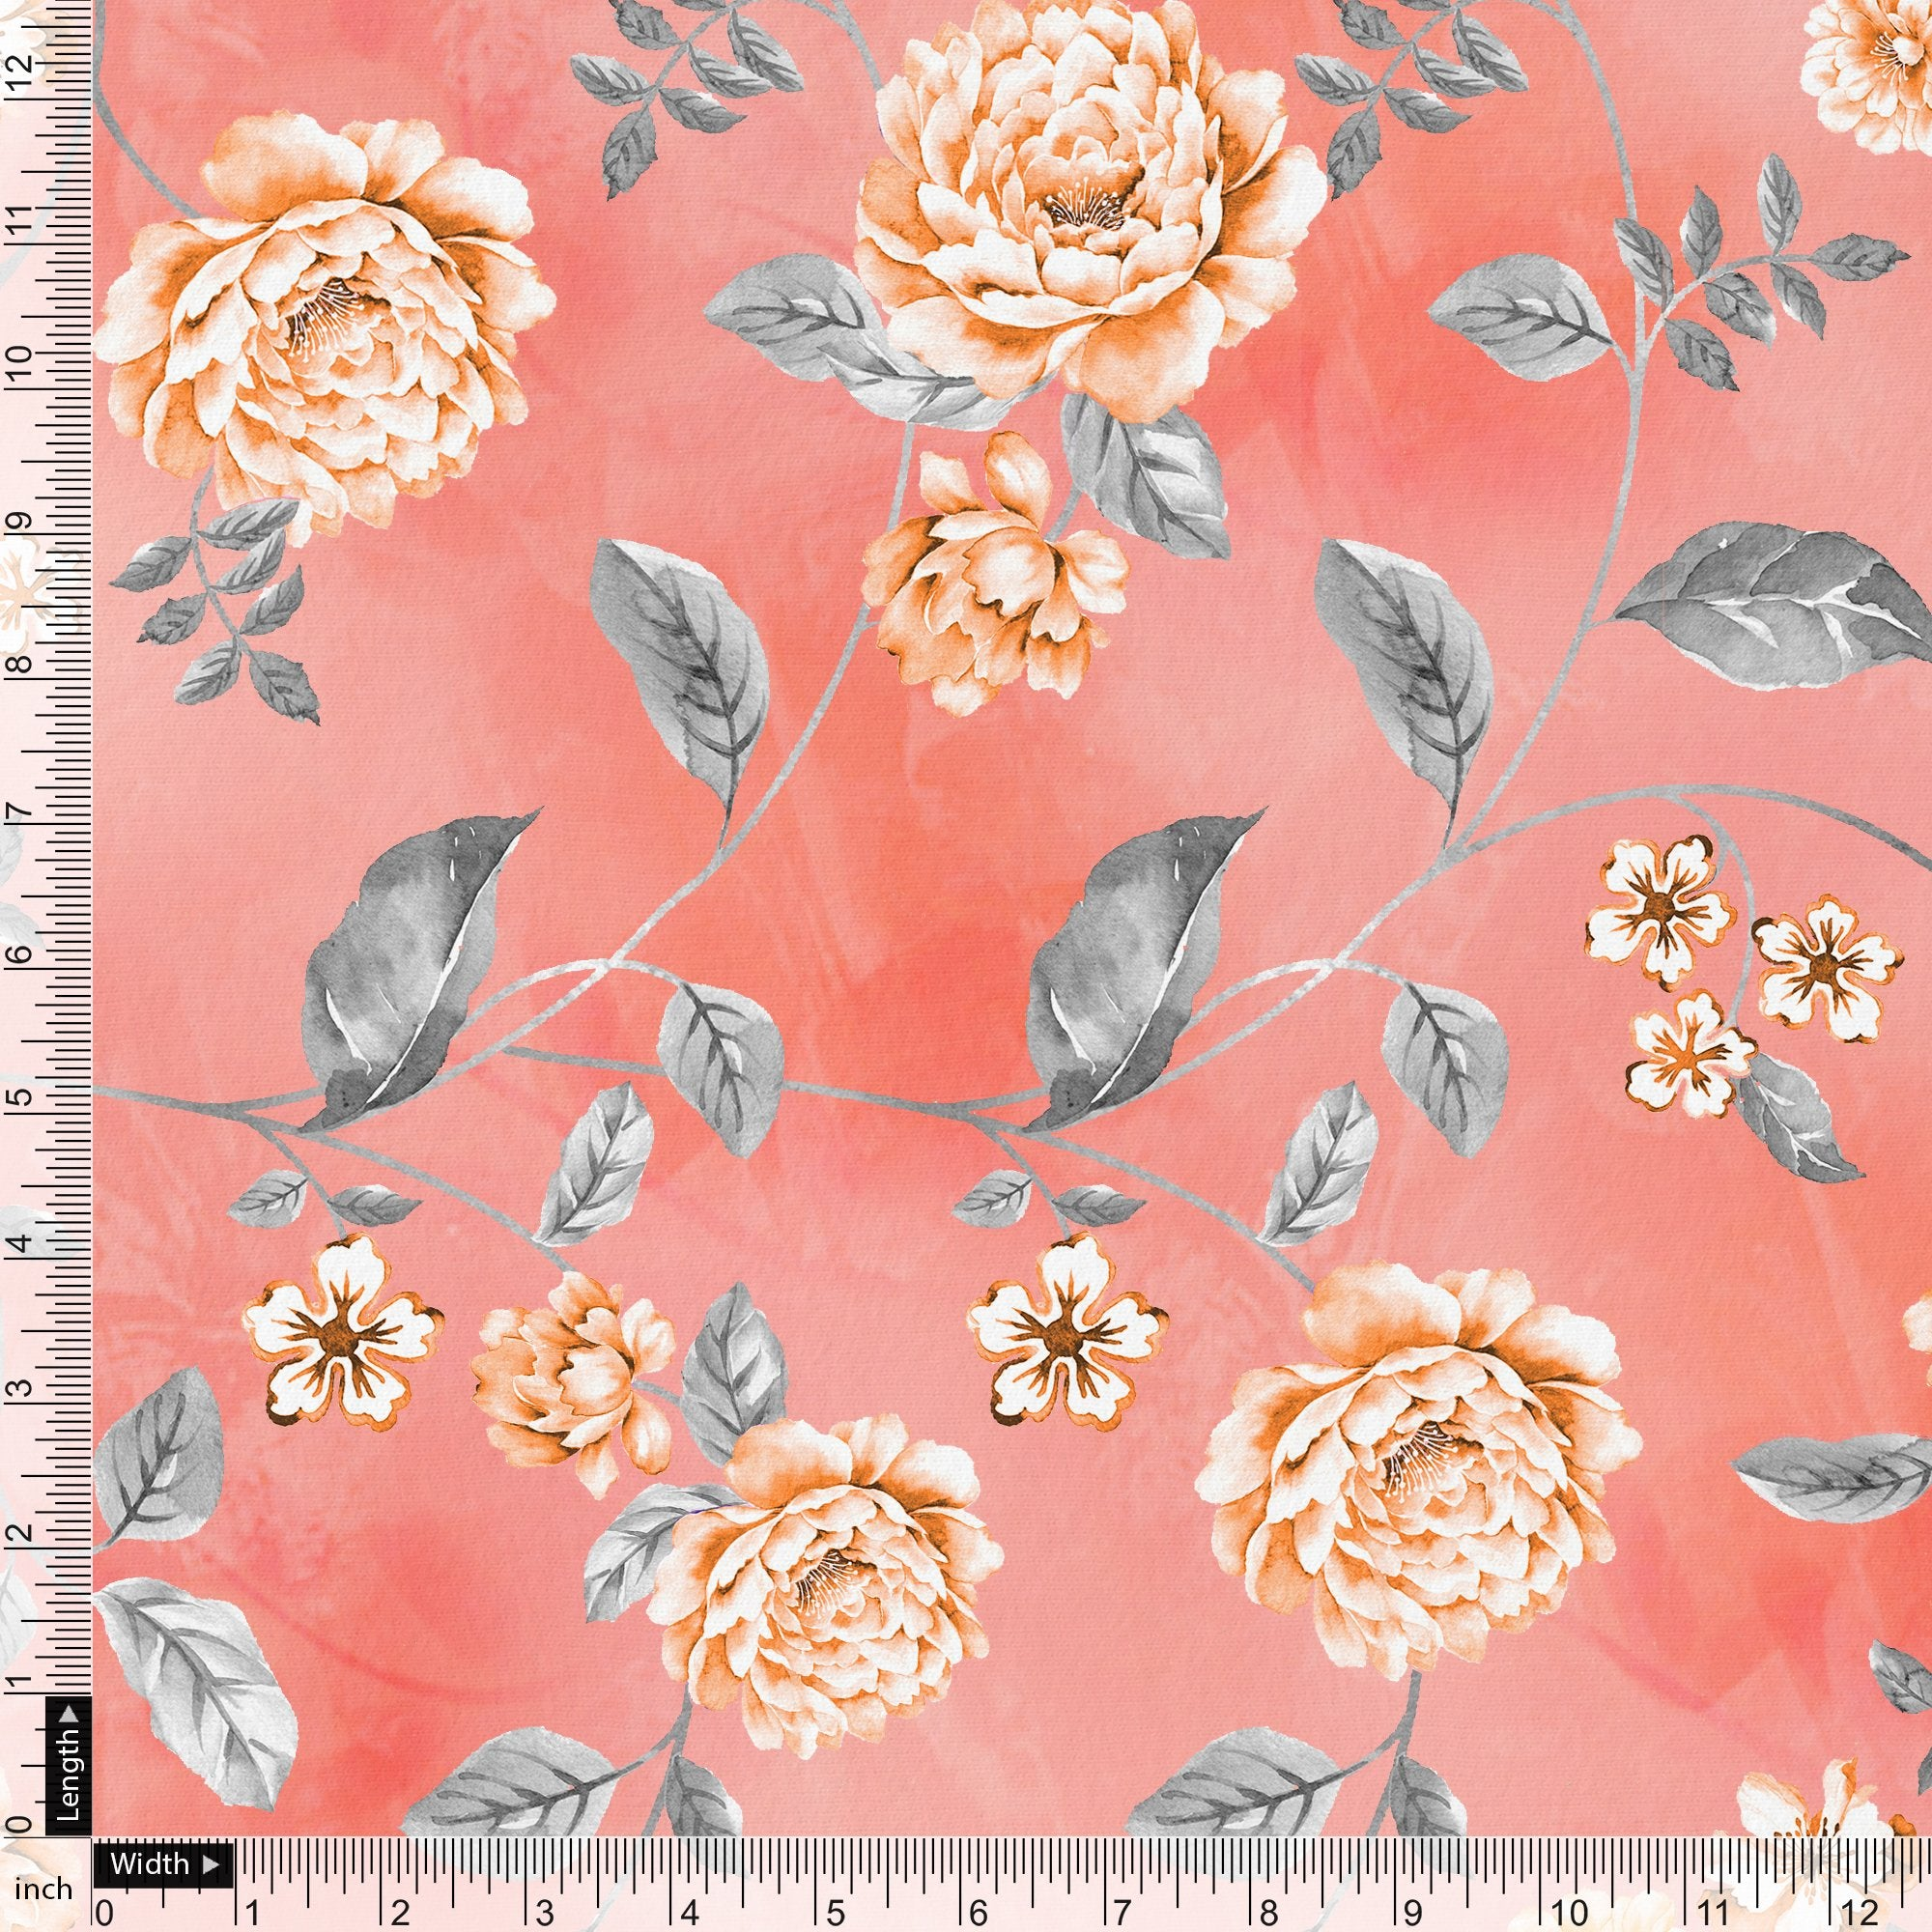 Beautiful Red Base Floral Vine Digital Printed Fabric - FAB VOGUE Studio. Shop Fabric @ www.fabvoguestudio.com